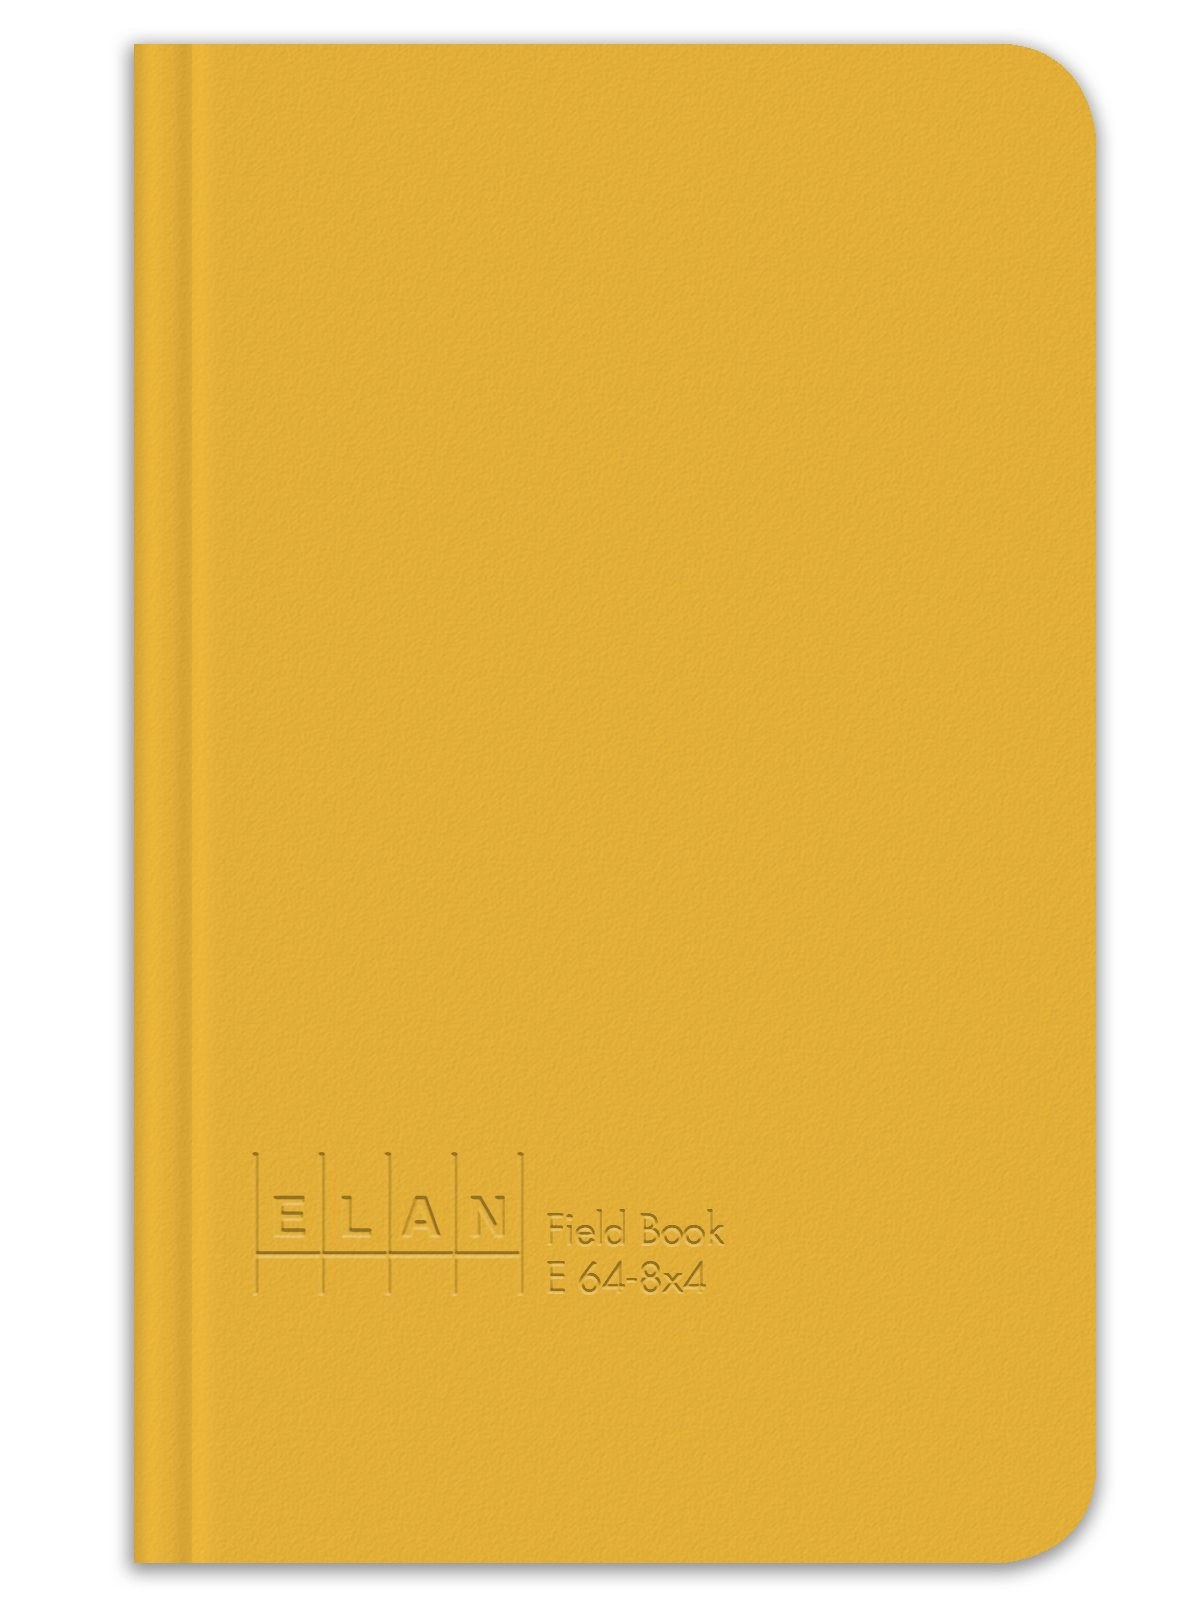 Elan Publishing Company E64-8x4 Field Surveying Book 4 ⅝ x 7 ¼, Yellow Cover (Pack of 6)